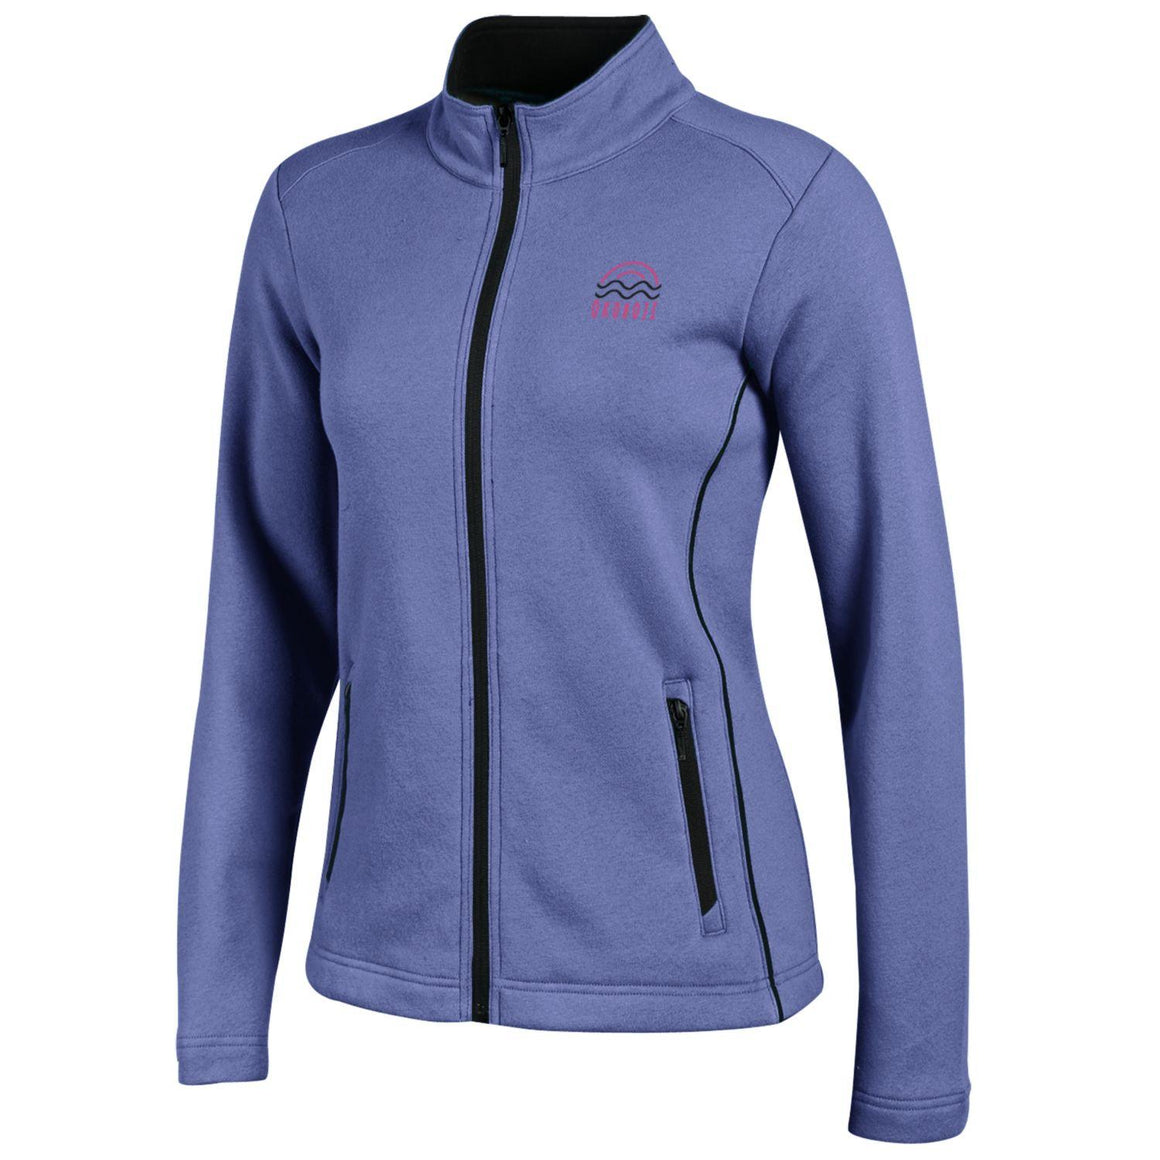 Ladies Deluxe Touch Full Zip-Frosty Lavender